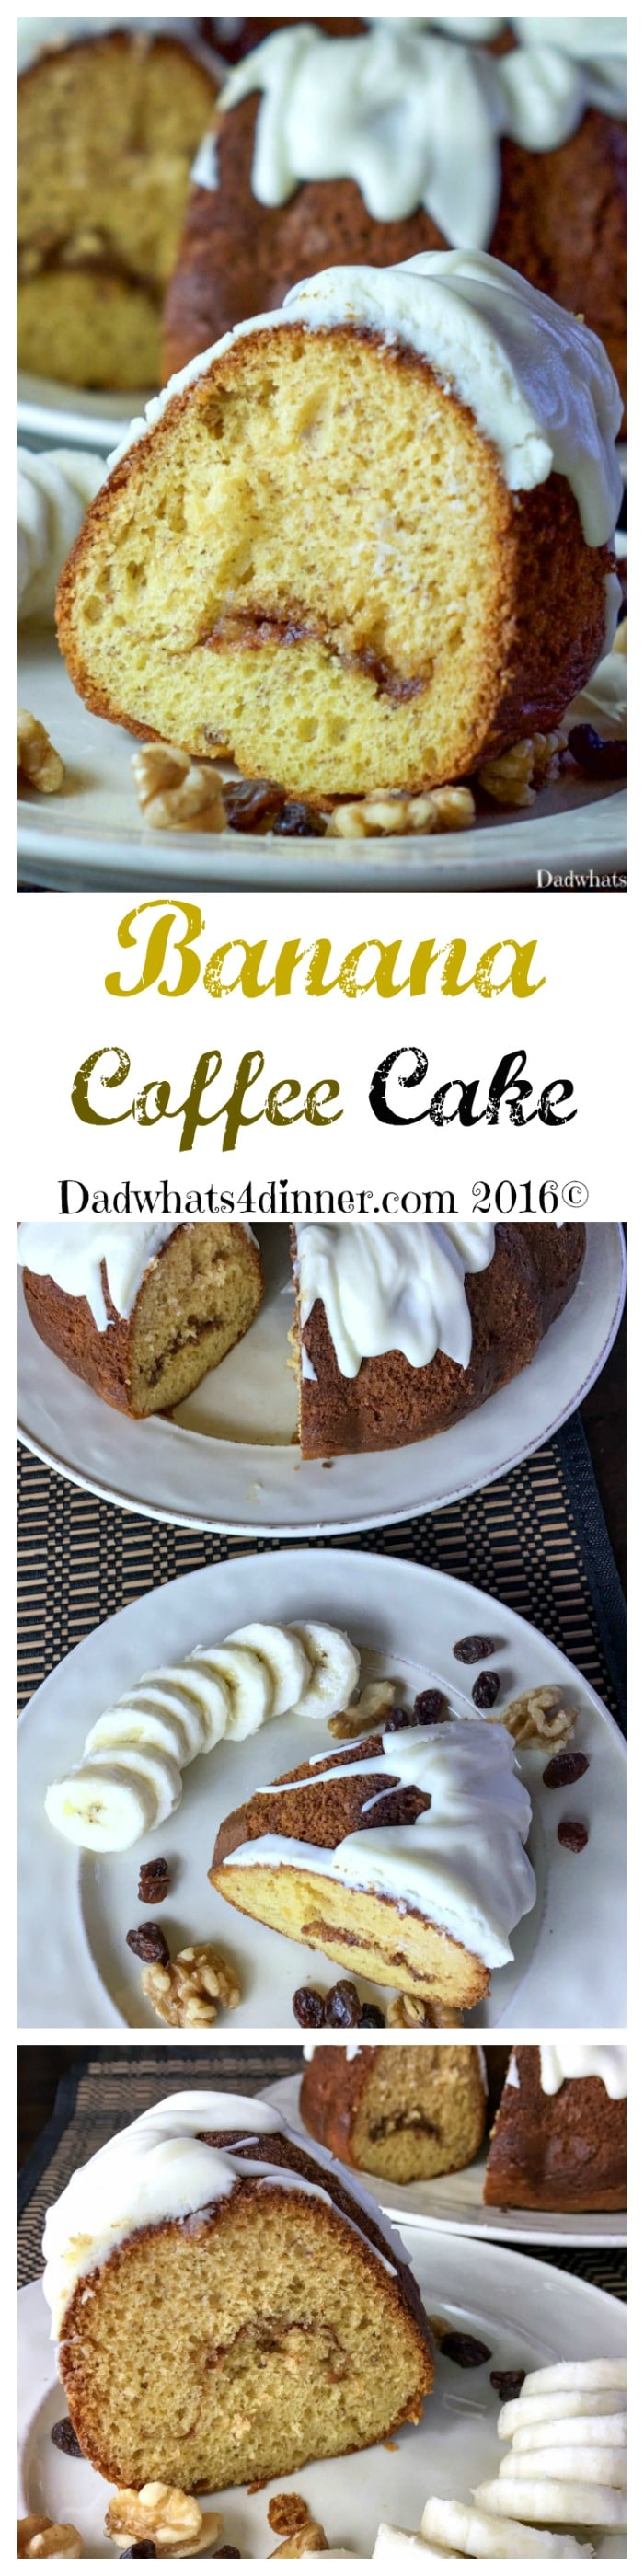 My Banana Streusel Coffee Cake is super moist with a sweet cream cheese frosting. Perfect for breakfast or dessert! #coffee-cake #cake #breakfast #brunch #banana-bread #holiday